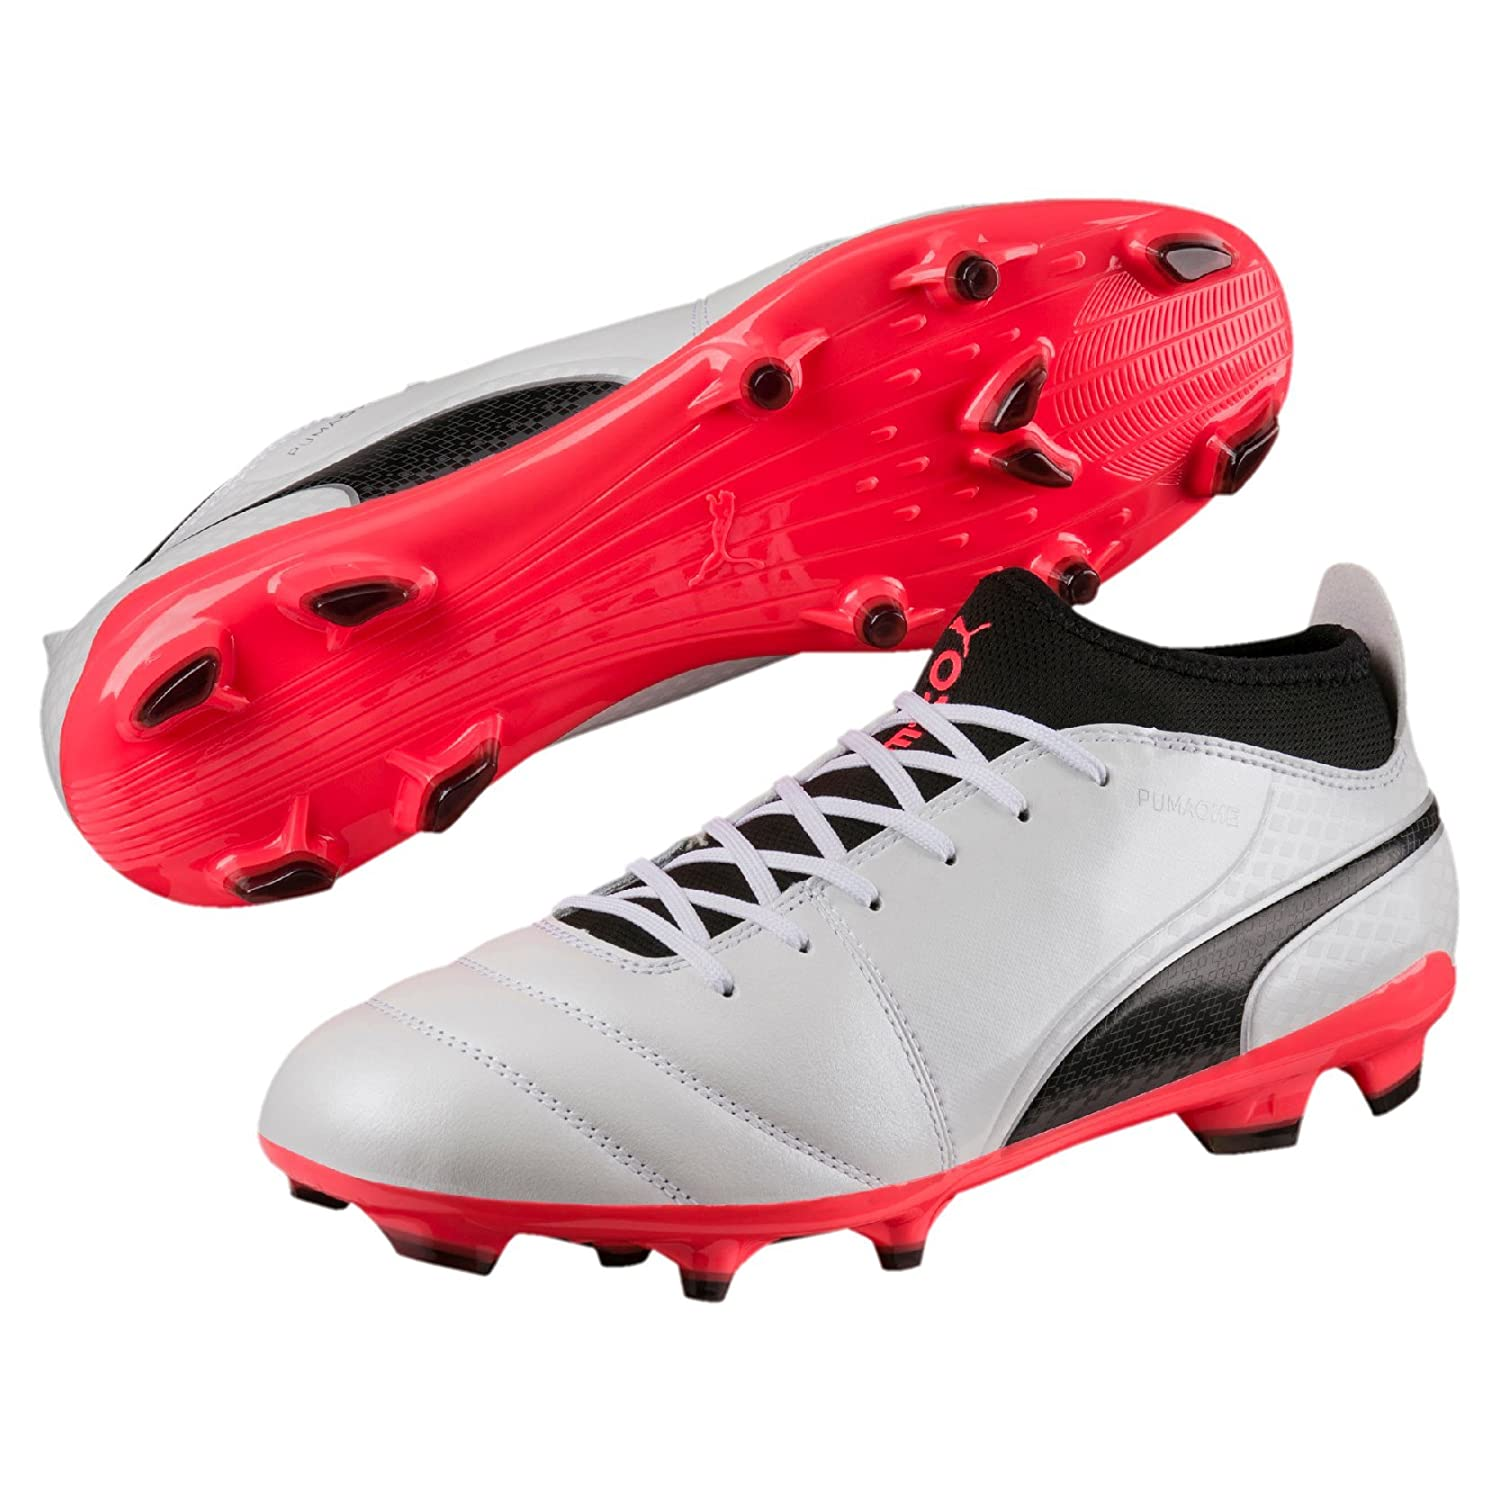 PUMA Men's One 17.3 Fg Football Boots